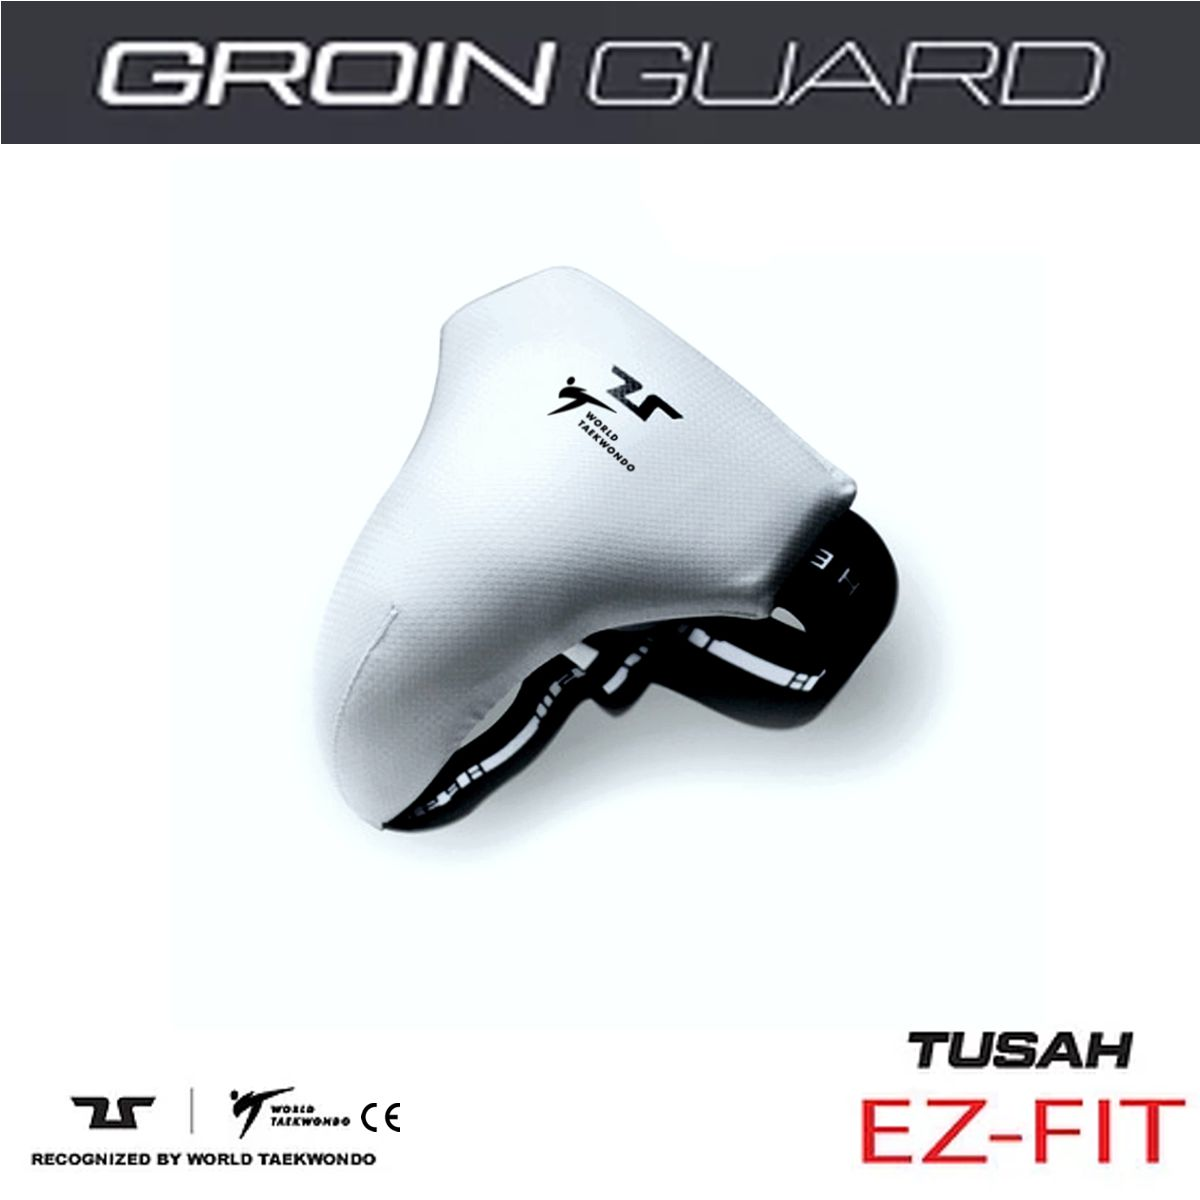 WT APPROVED Taekwondo Male Groin Guard